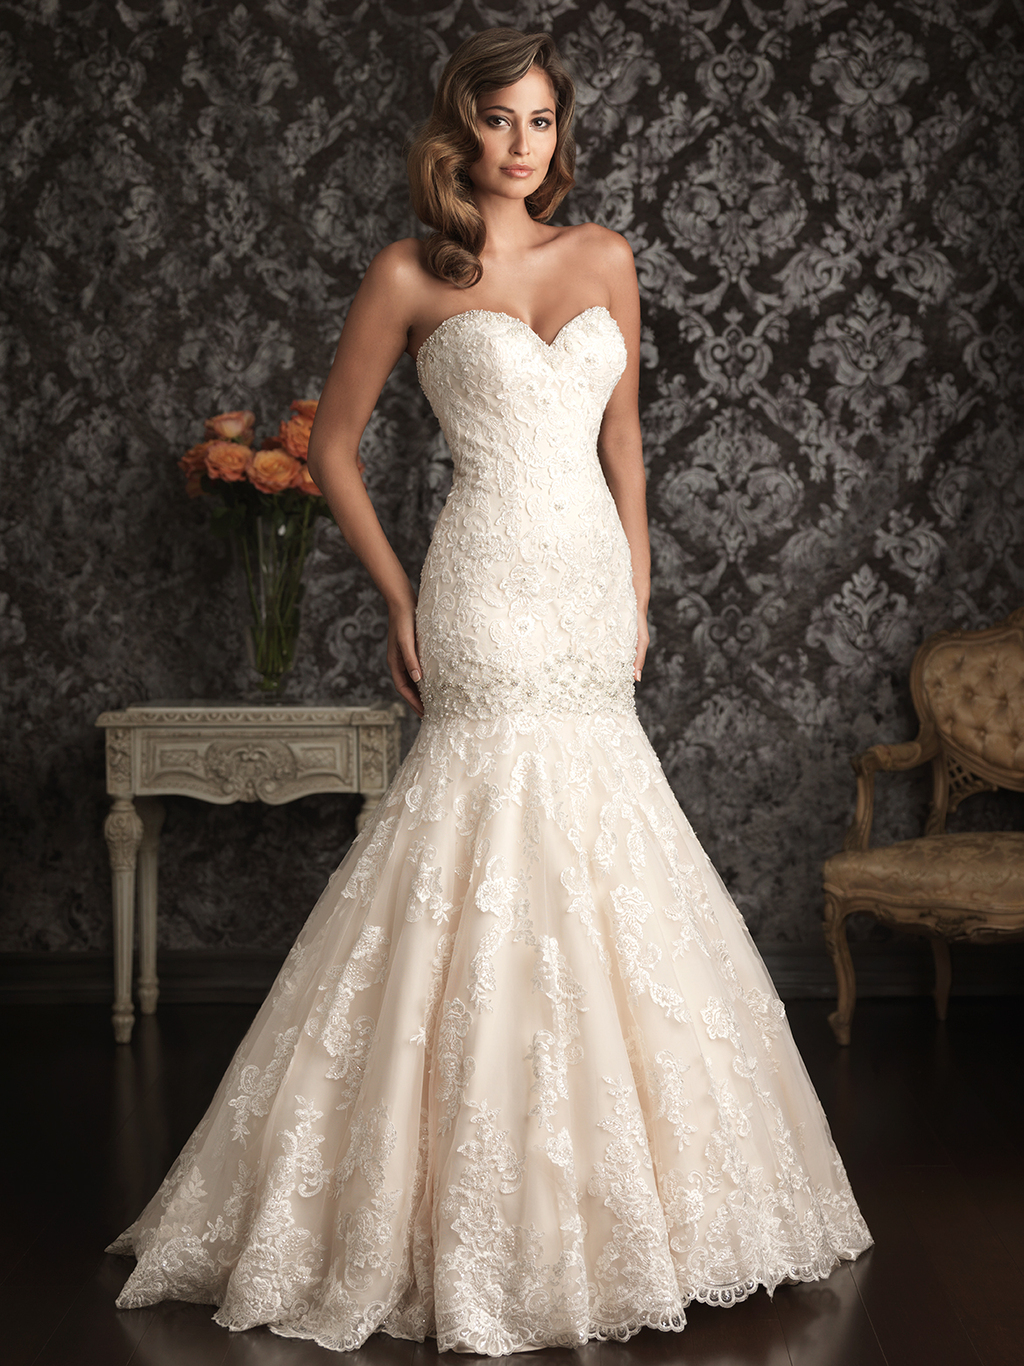 Allure-bridals-wedding-dress-bridal-gown-allure-collection-sweetheart-9018f.full